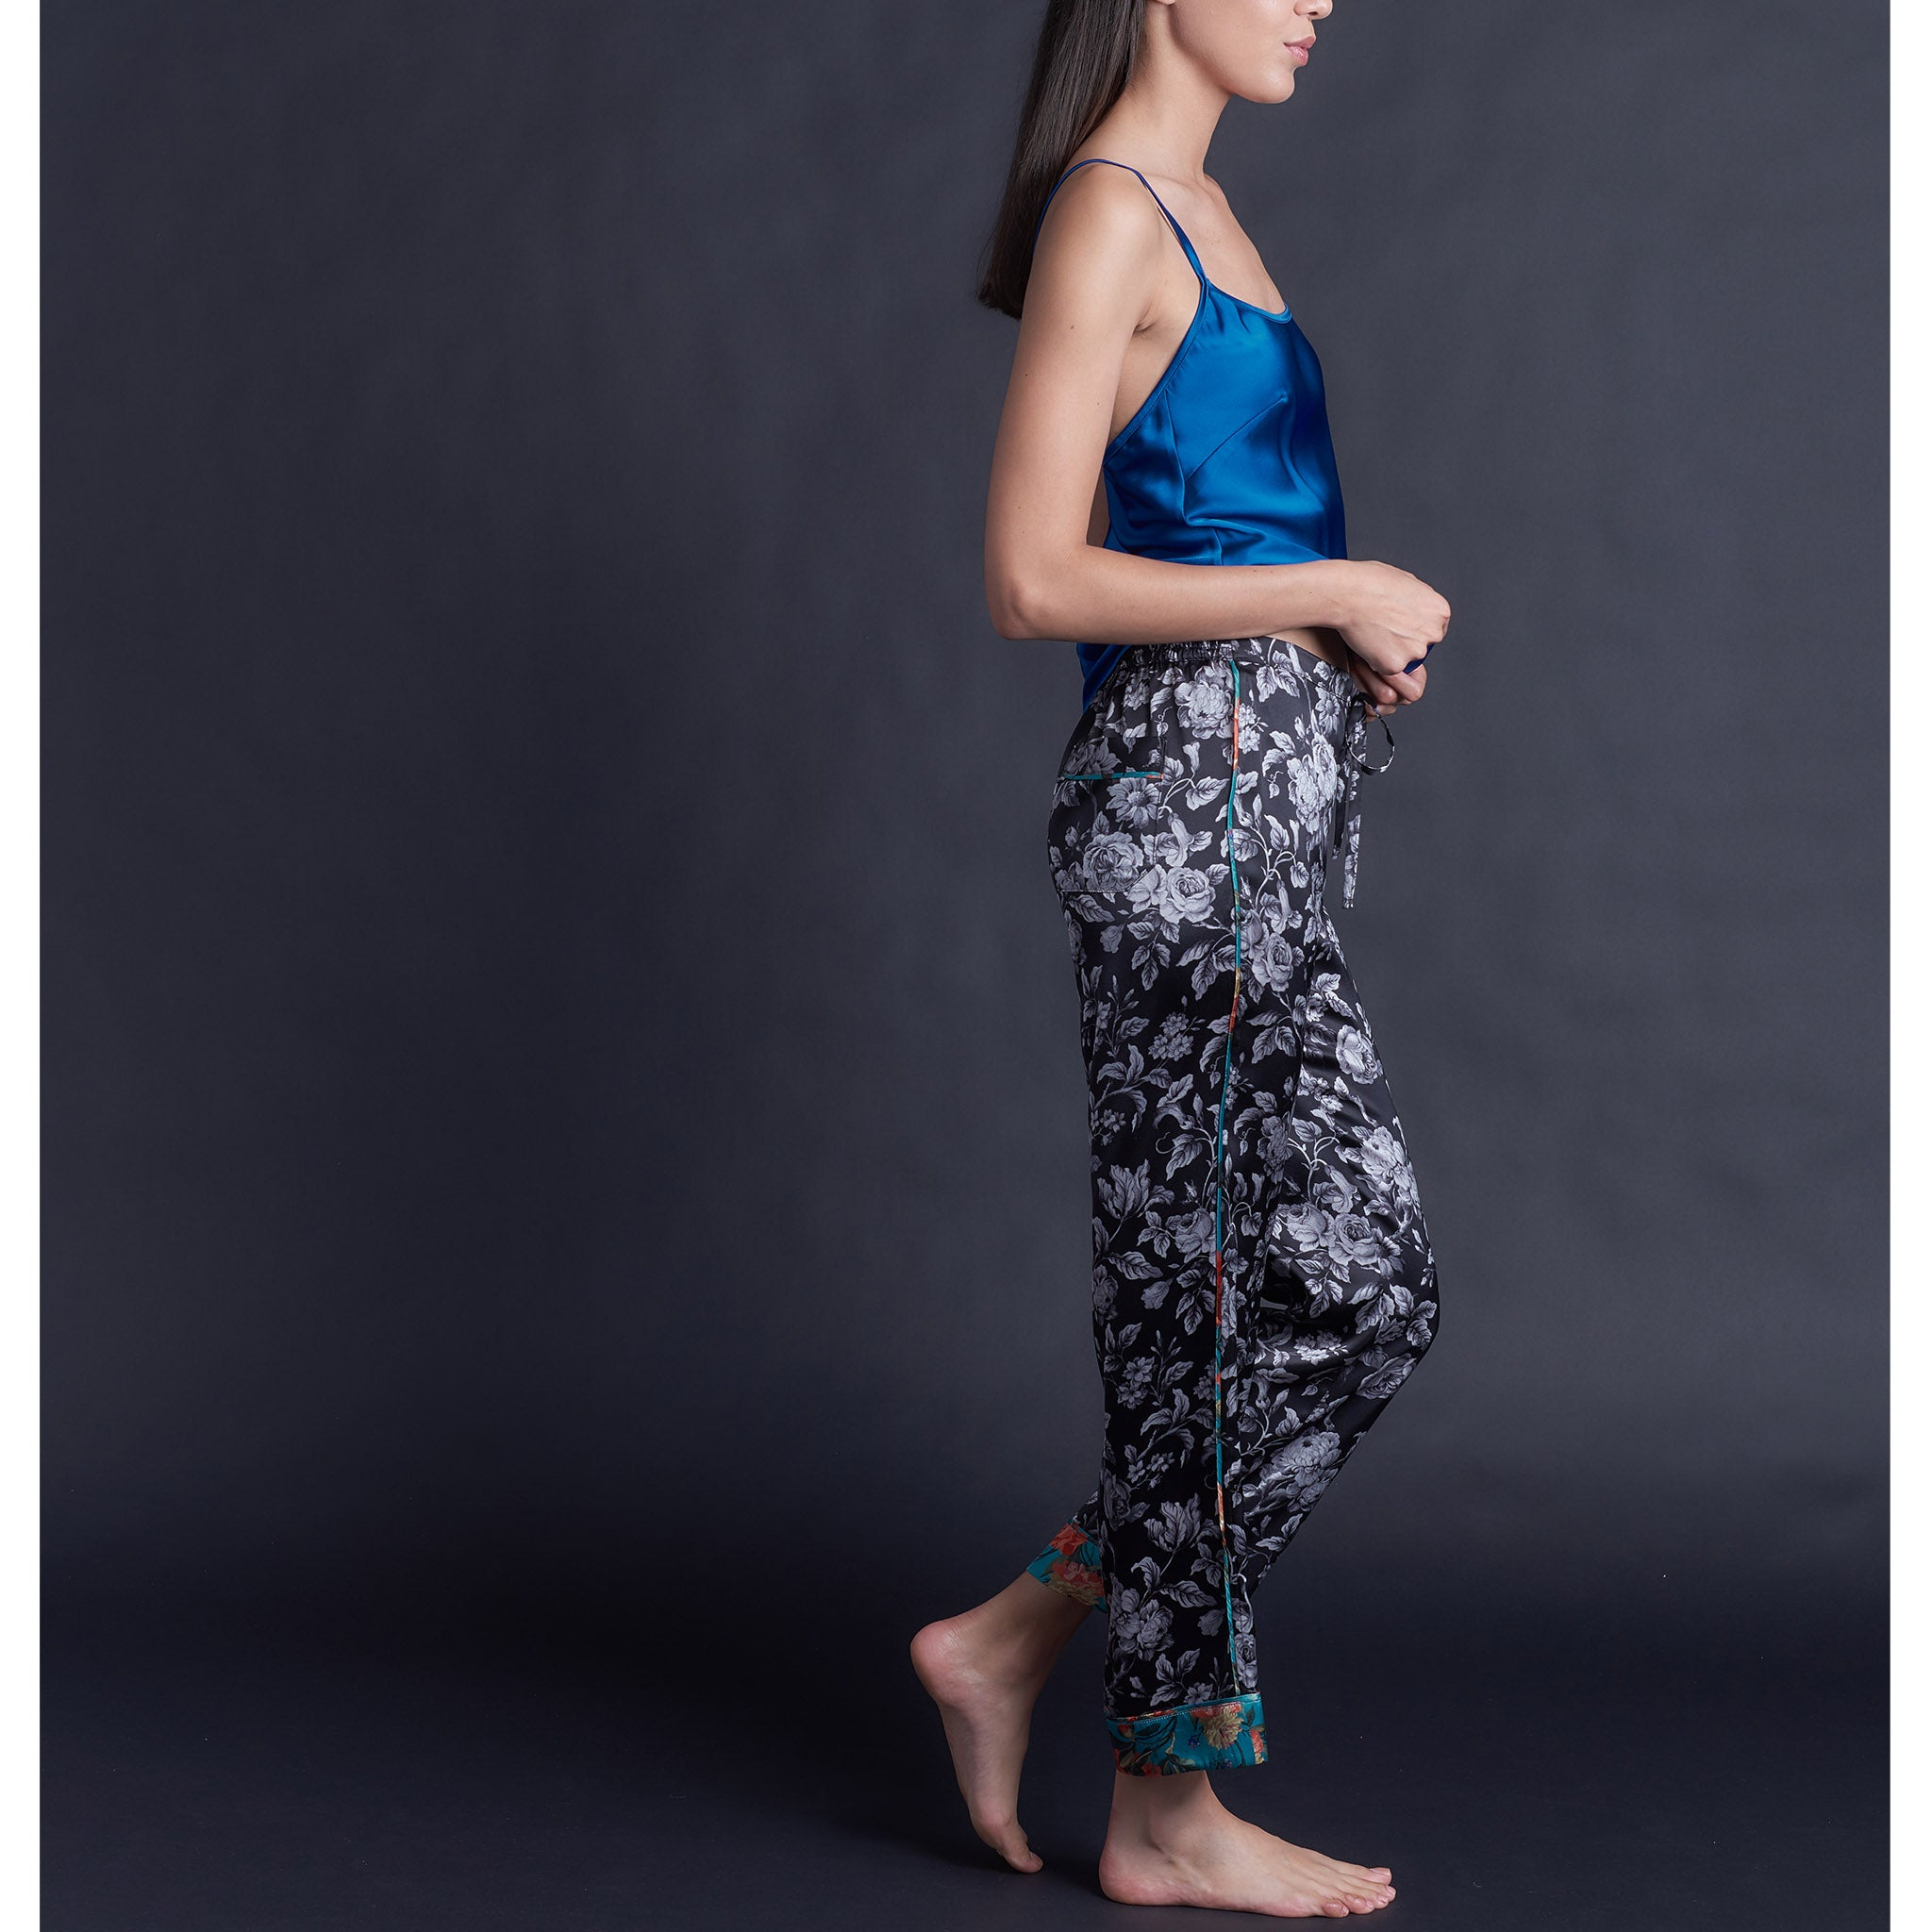 Annabel Pajama Pant in Gracefully Liberty Print Silk Charmeuse